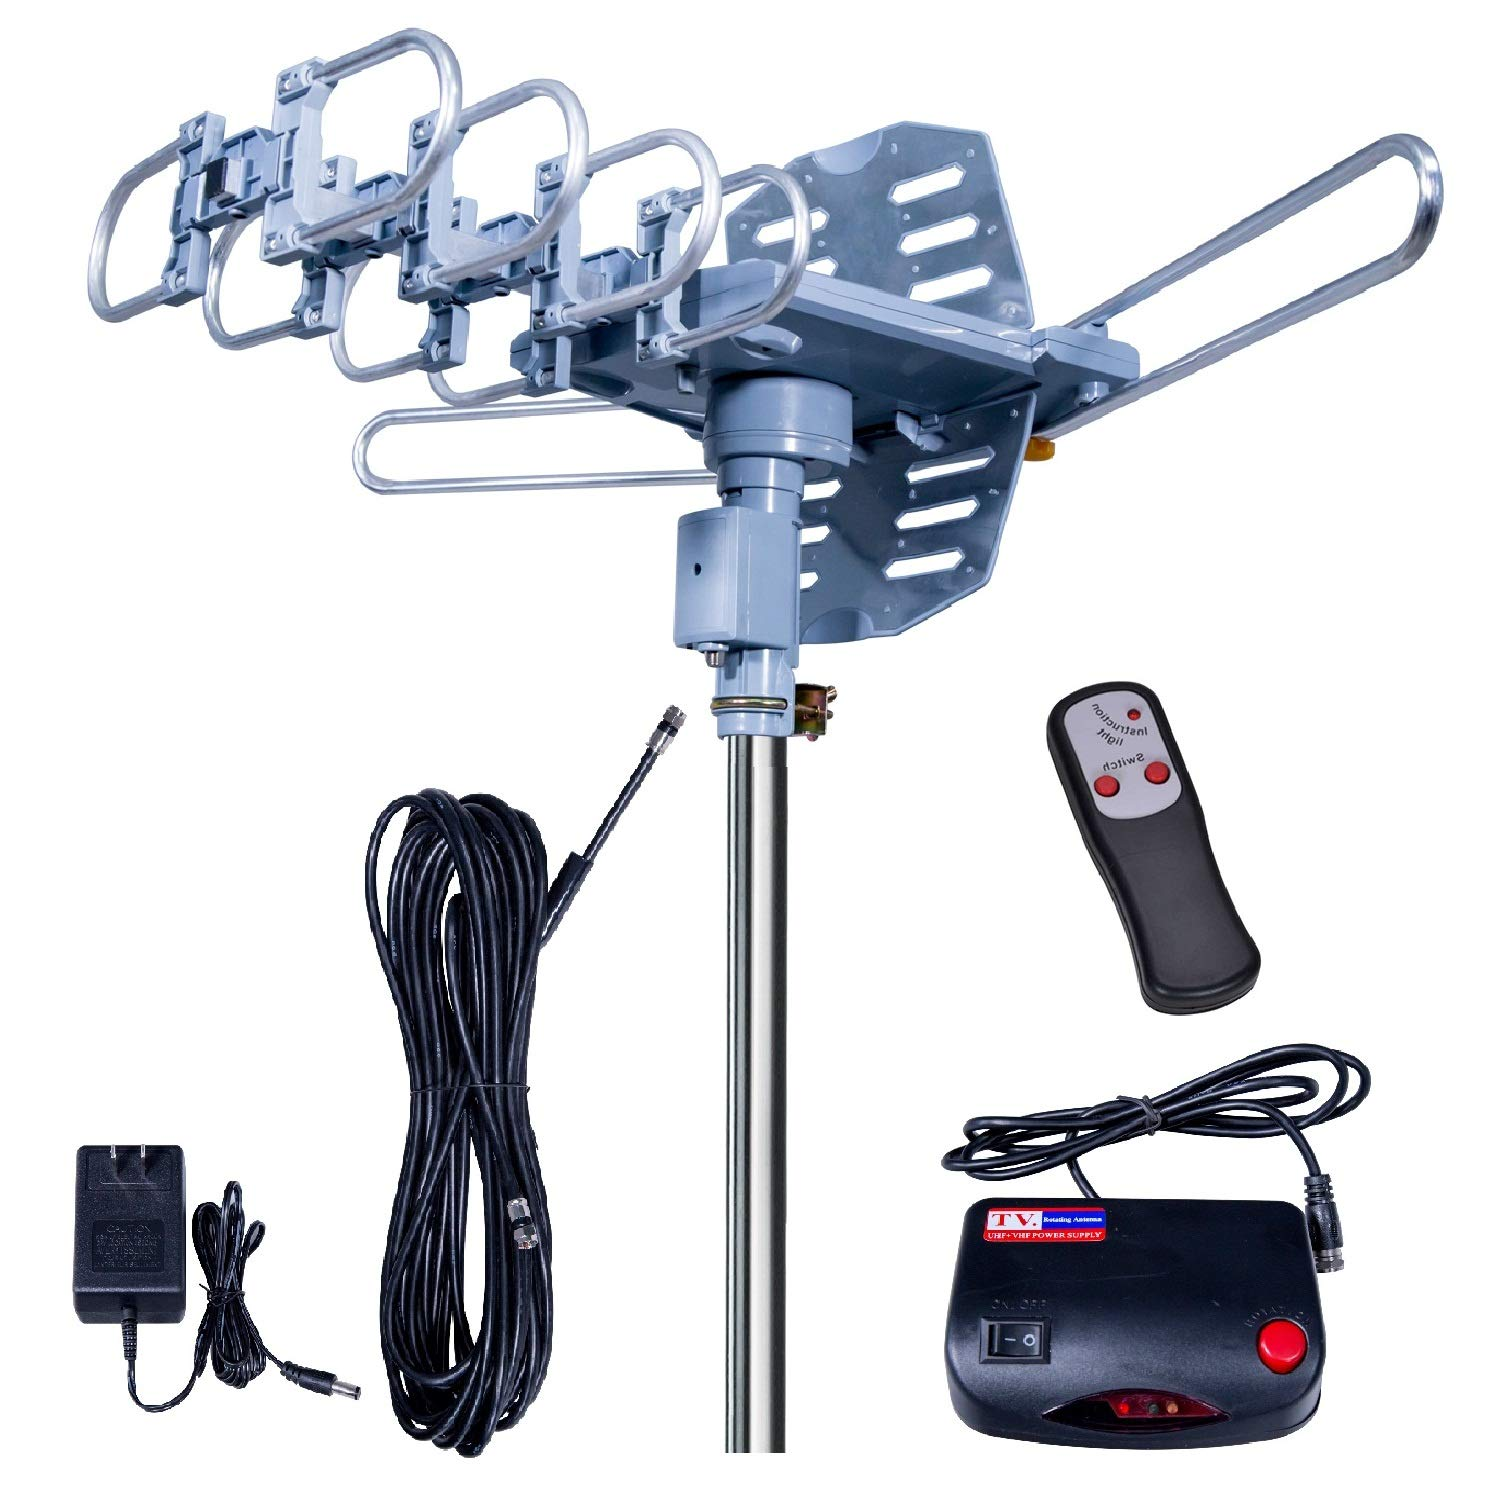 2019UPDATED!150 Miles-Amplified Outdoor TV Antenna-4K/1080p High Reception+40FT RG6 Cable-360°Strong Motor Rotation Wireless Remote- Snap On Installation+2TV Function by Fardalo